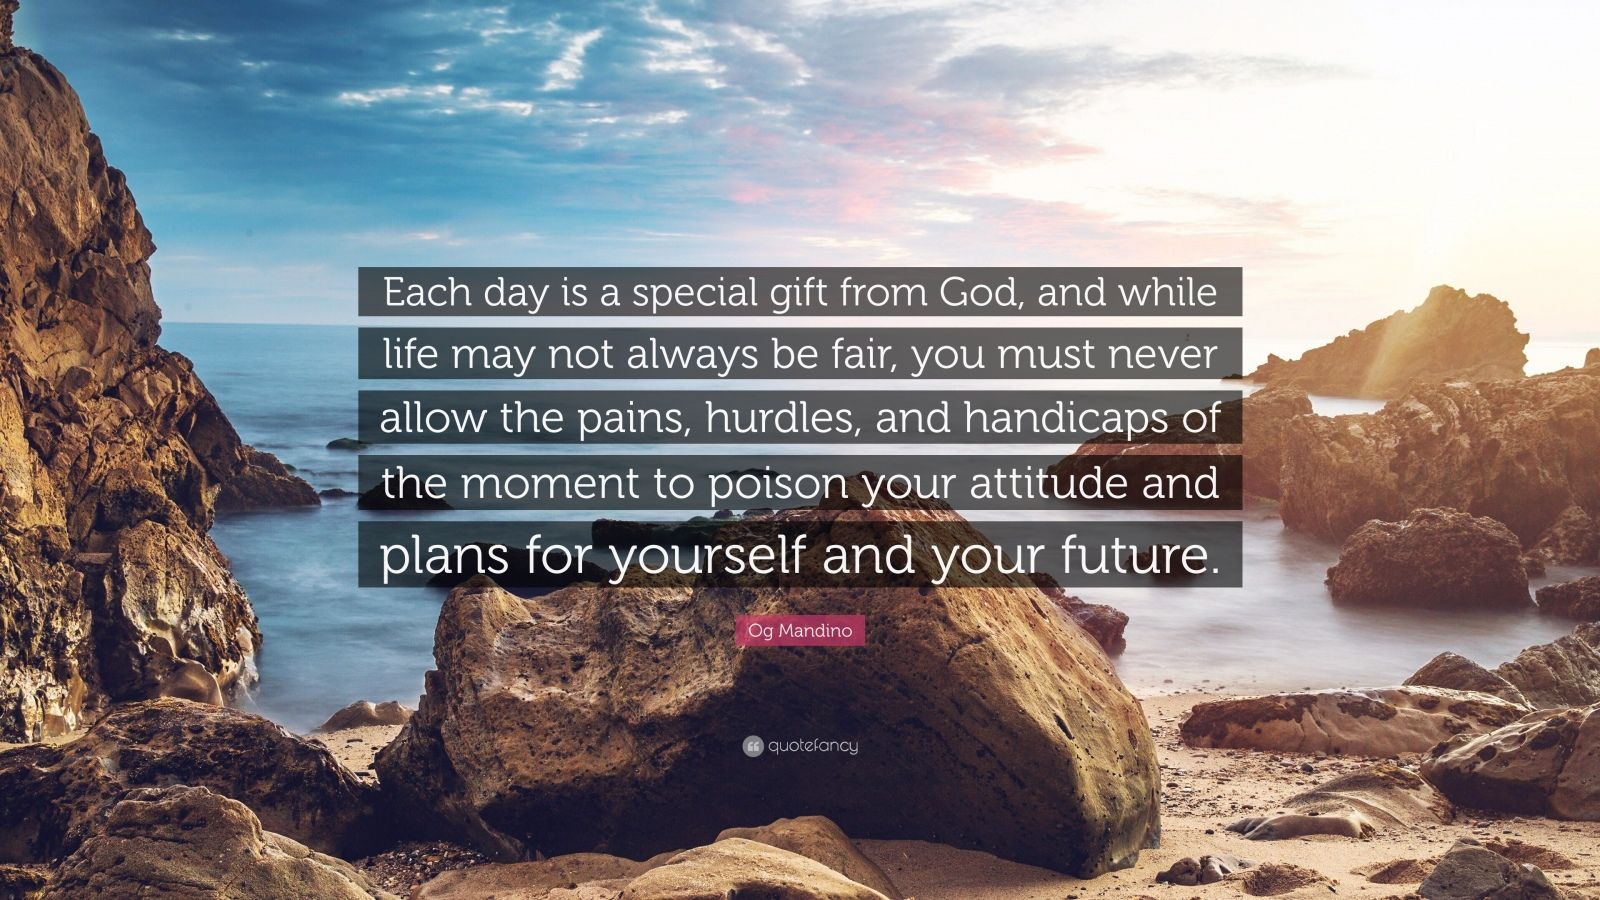 """Og Mandino Quote: """"Each day is a special gift from God, and while life may not always be fair, you must never allow the pains, hurdles, and handicaps of the moment to poison your attitude and plans for yourself and your future."""""""